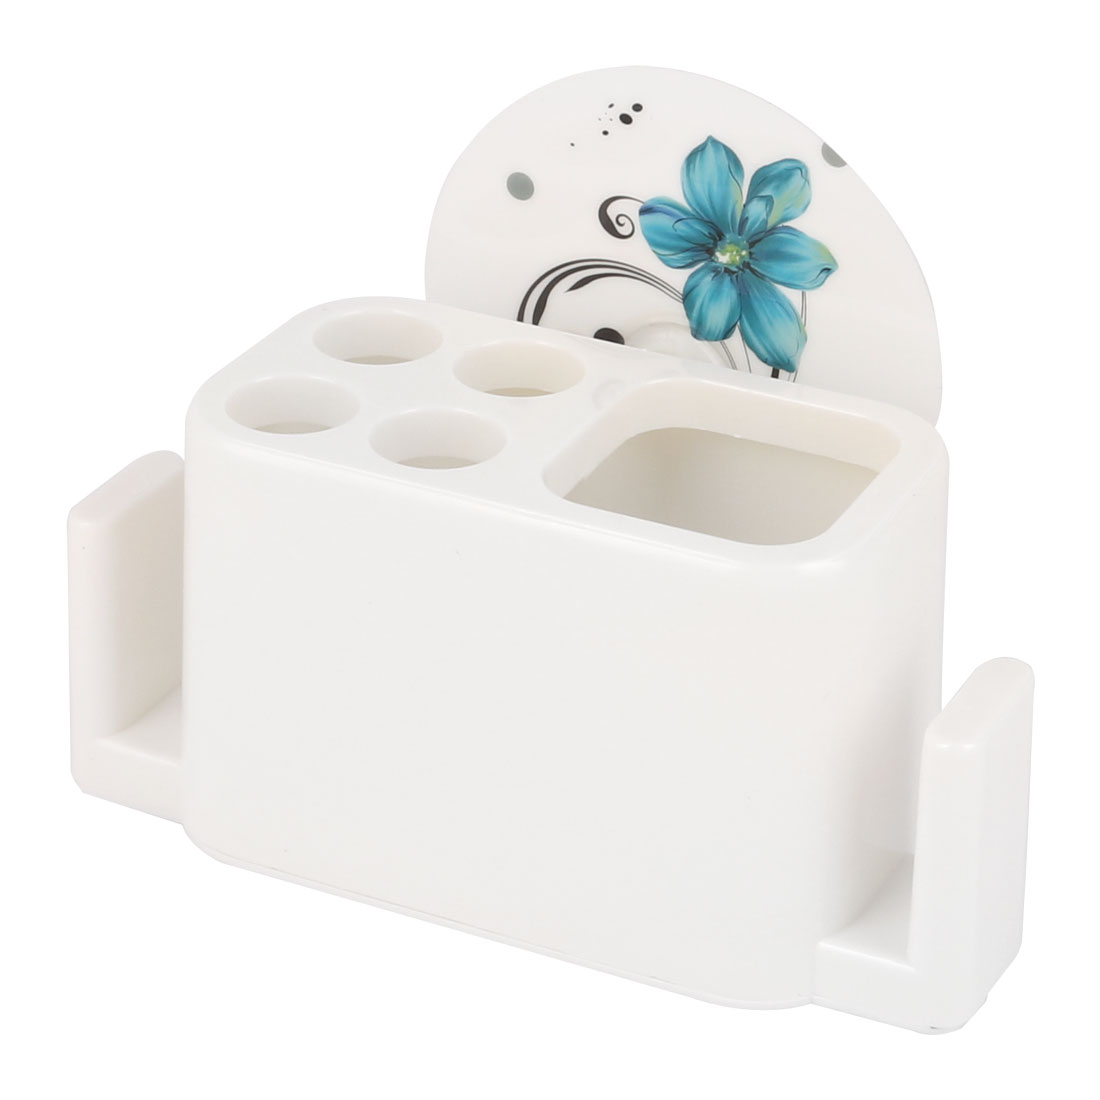 Kitchen Bathroom Toothbrushes Towel Holder Wall Basket Shelf White